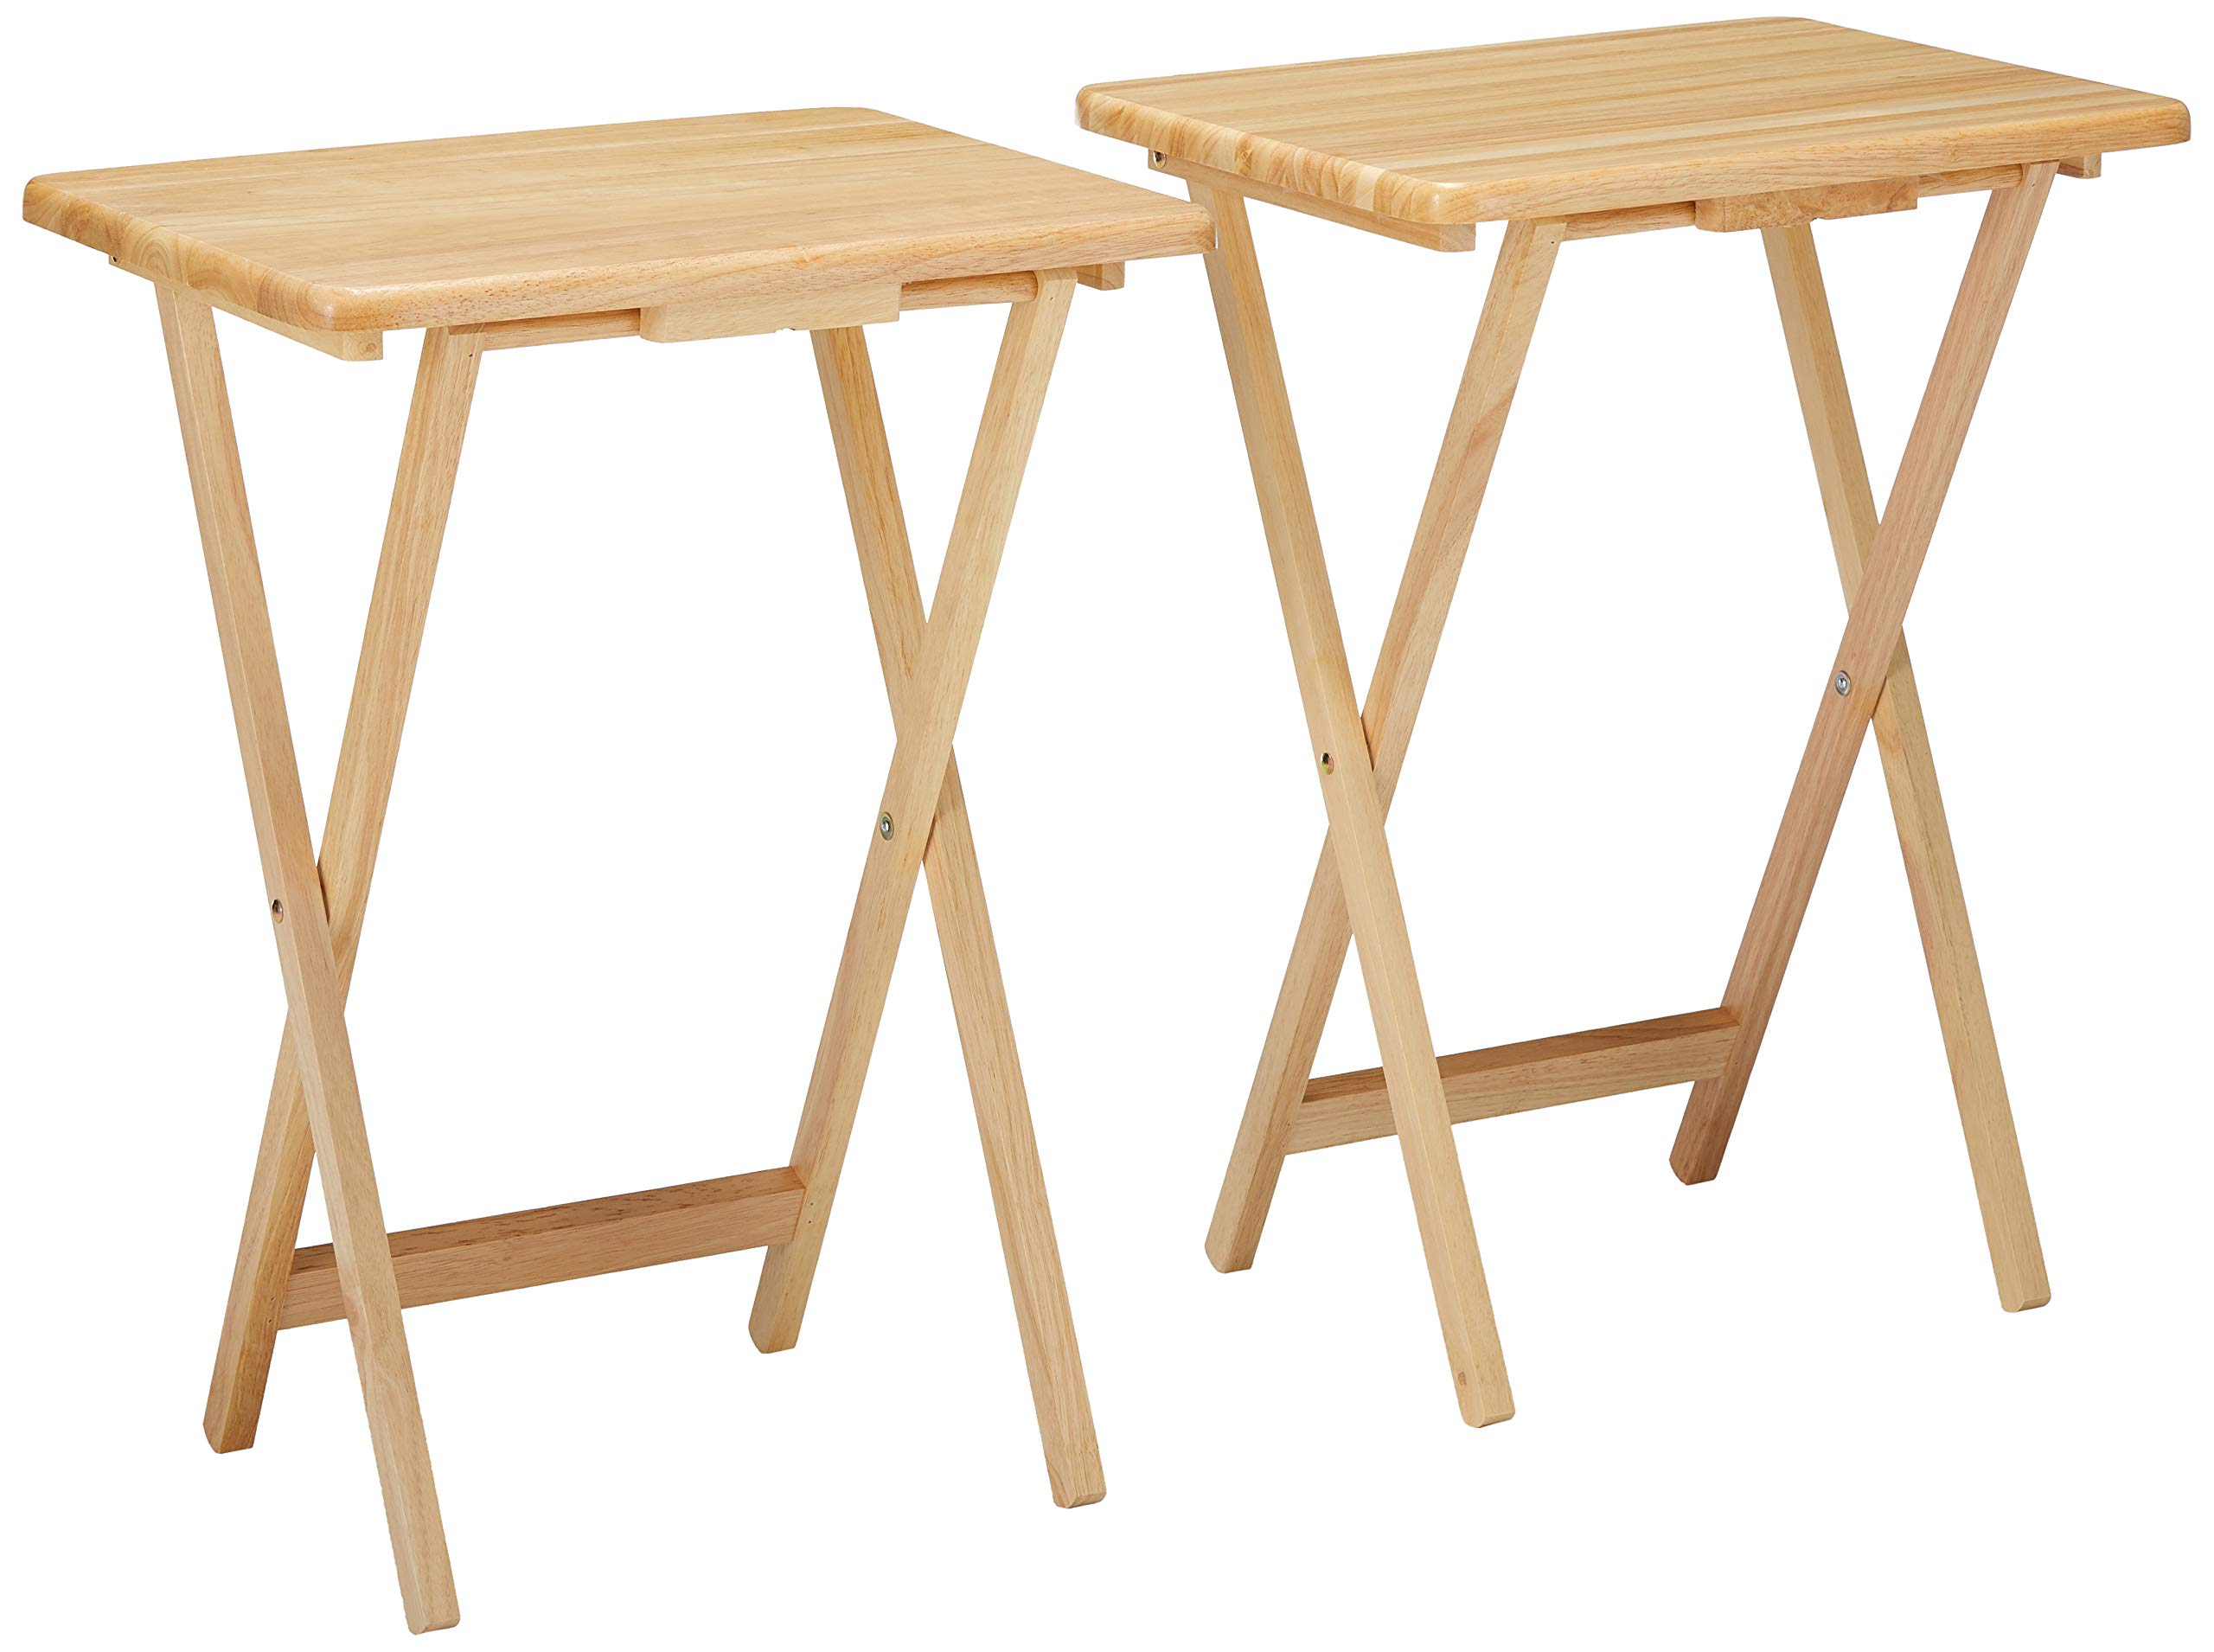 Winsome Wood 42290 Alex 2-pc Set TV Table, Natural by Winsome Wood